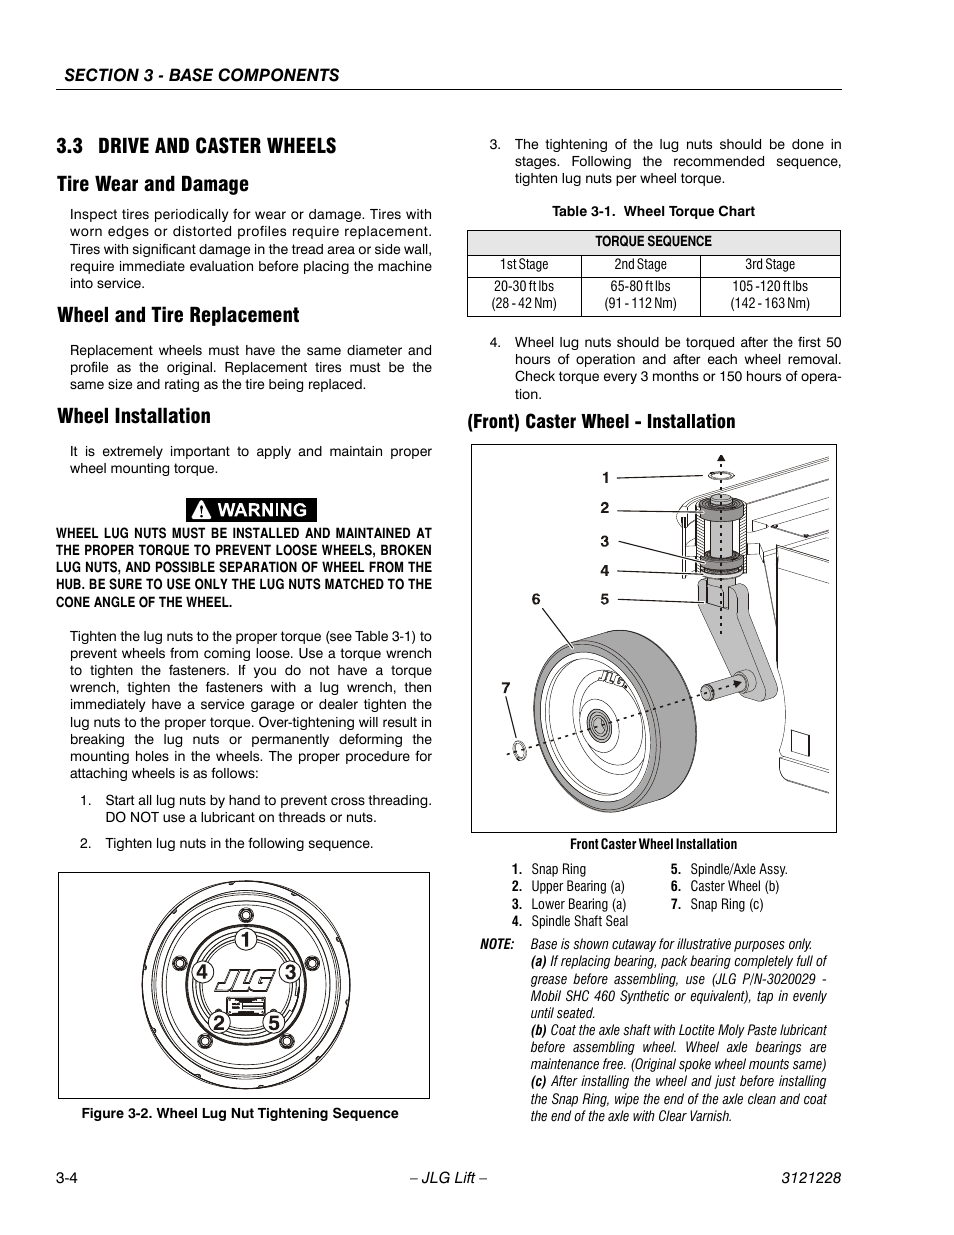 hight resolution of 3 drive and caster wheels tire wear and damage wheel and tire replacement